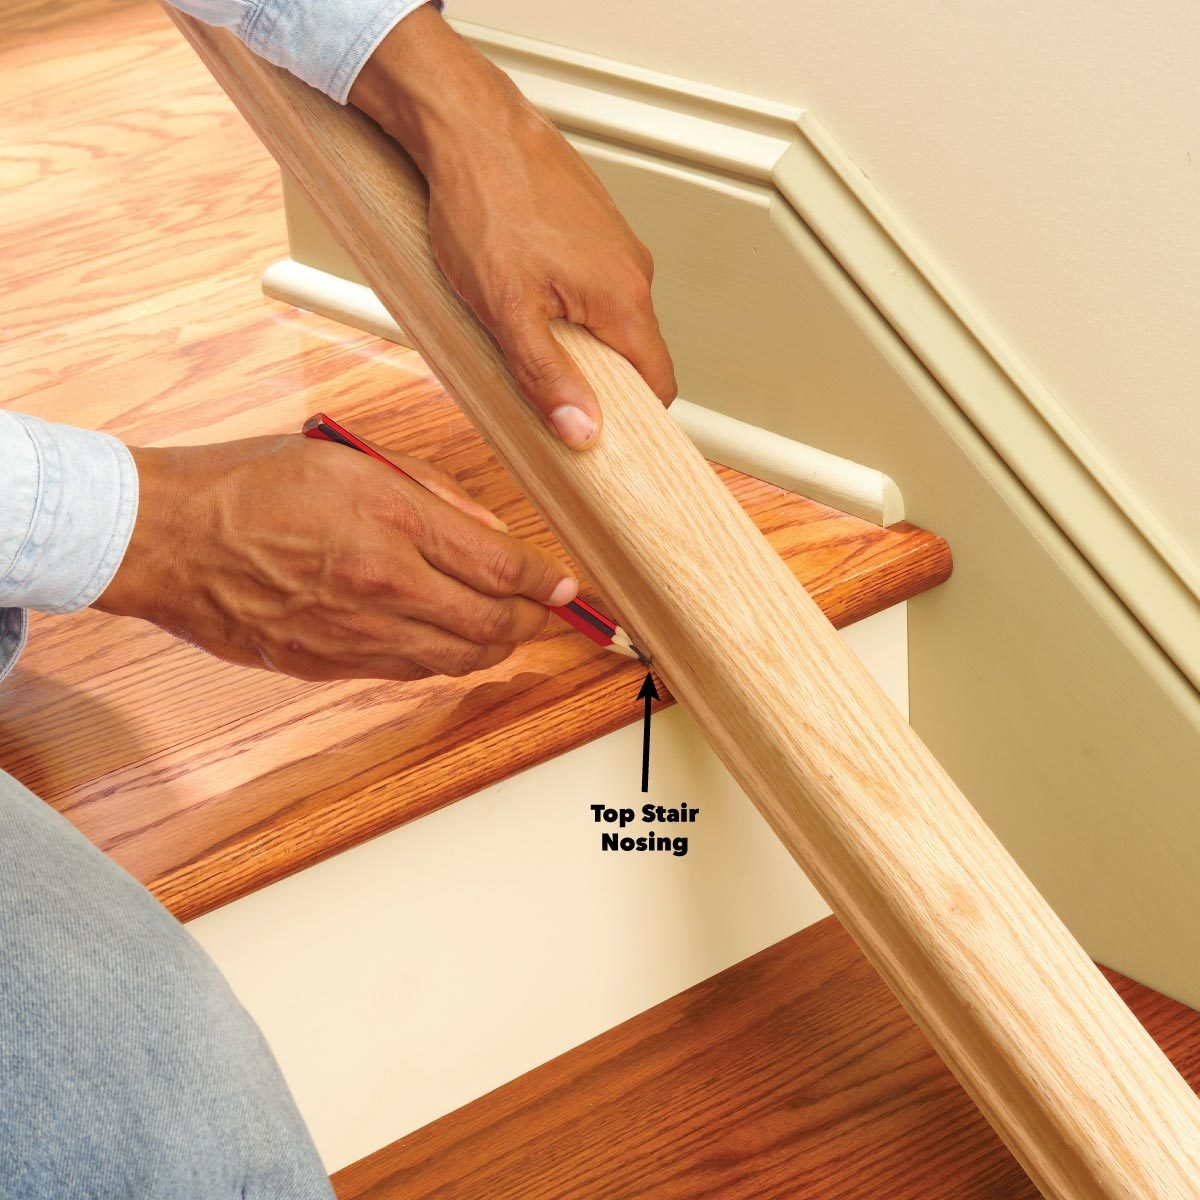 Install A New Stair Handrail | 2 Inch Round Wood Handrail | End Cap | Handrail Brackets | Stairs | Inch Diameter | Stair Railings